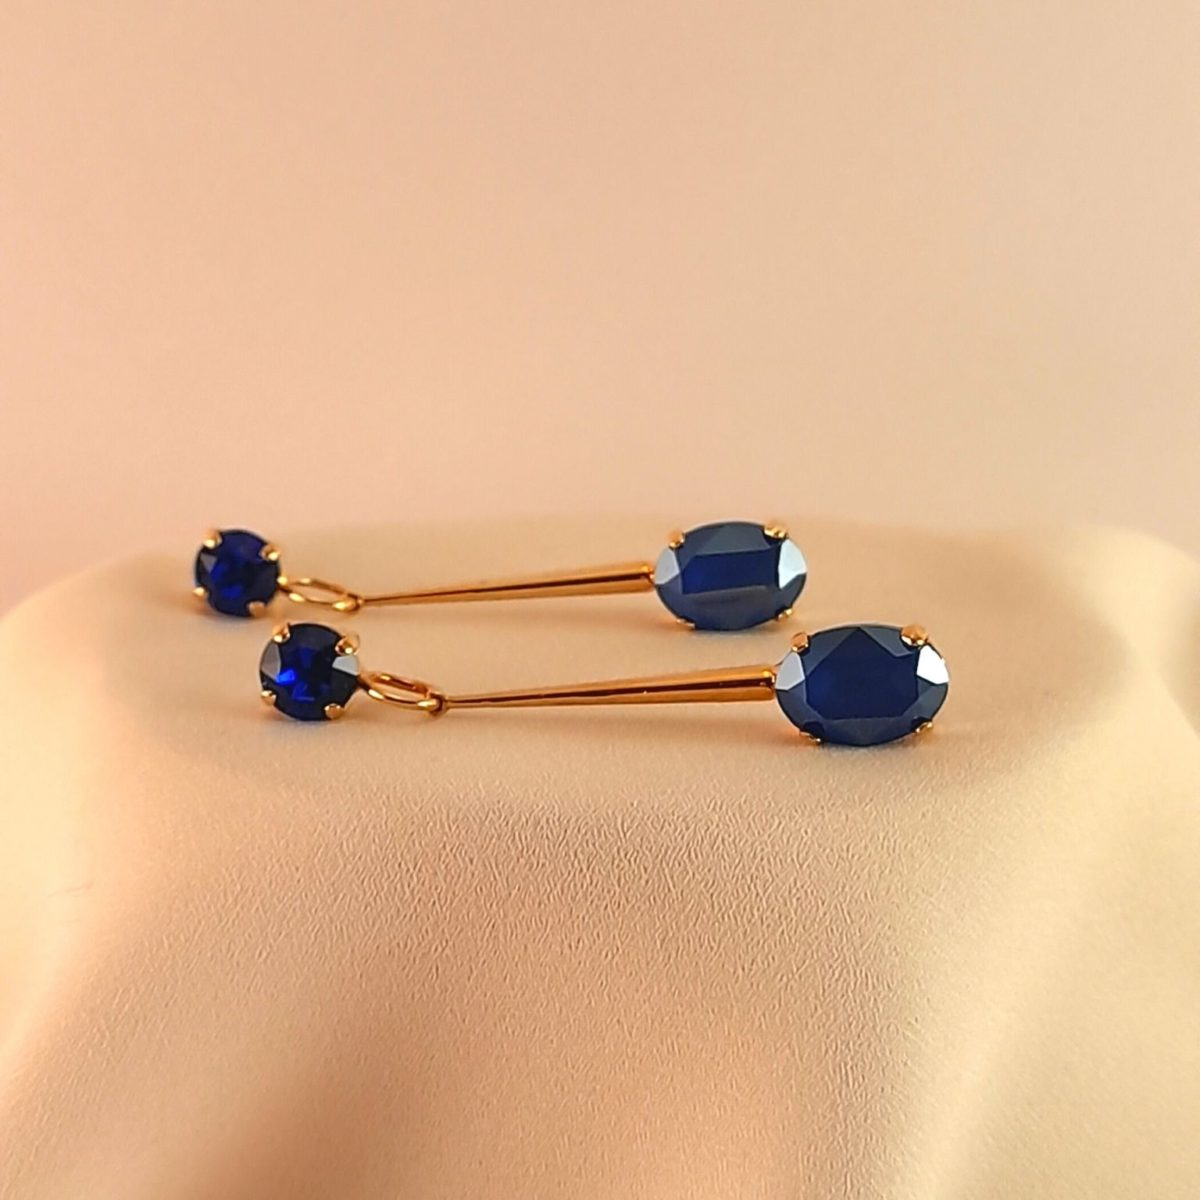 Long Earrings With 2 Blue Colored Stones